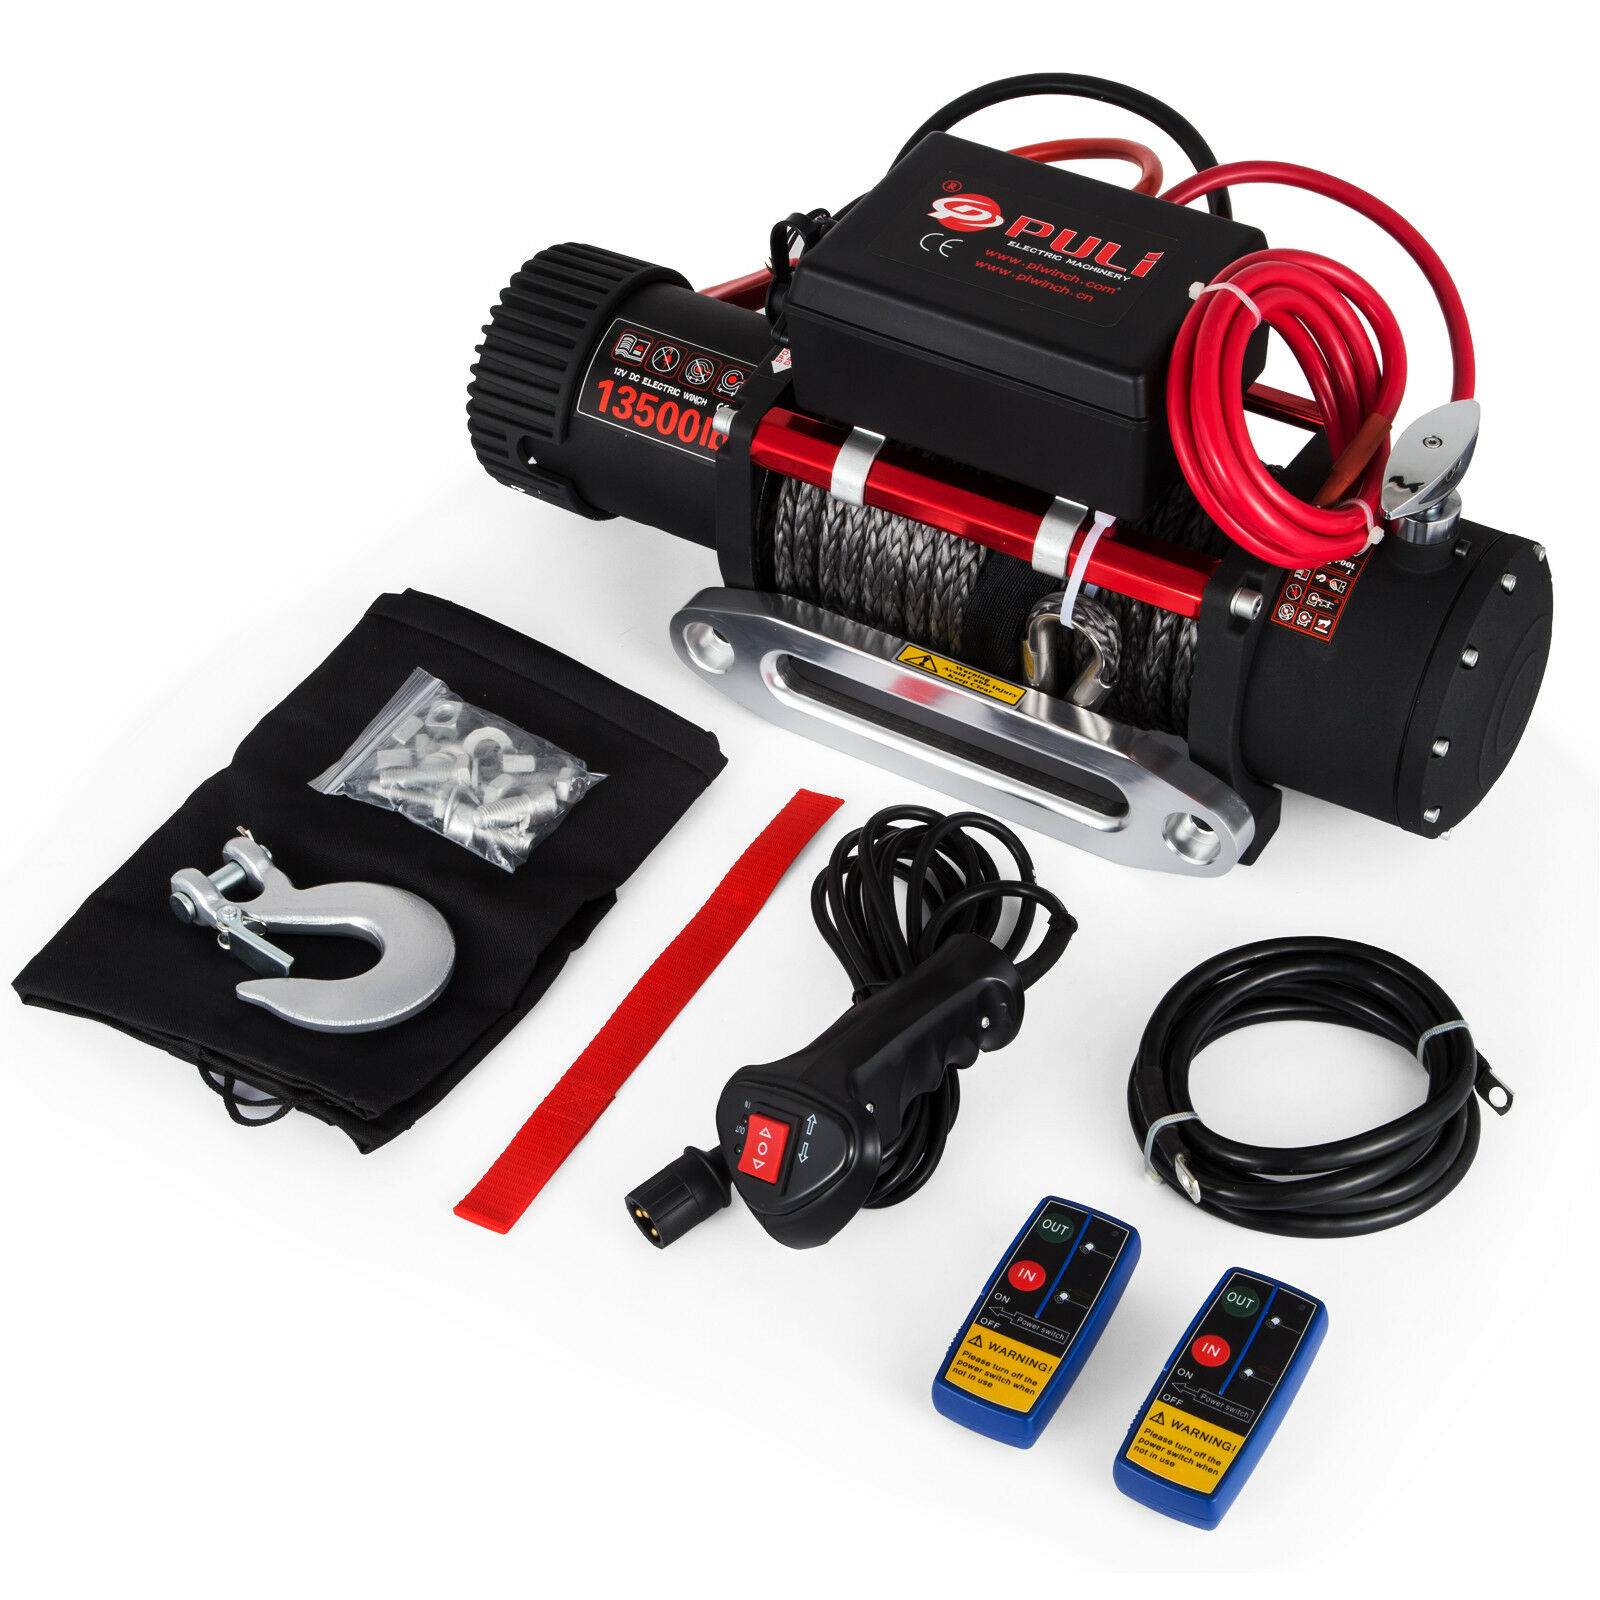 Free Shipping For EU 12v Electric Winch ATV Recovery Winch 6120 KG 13500LBS Winch Synthetic Rope With Remote Control For ATV UTV